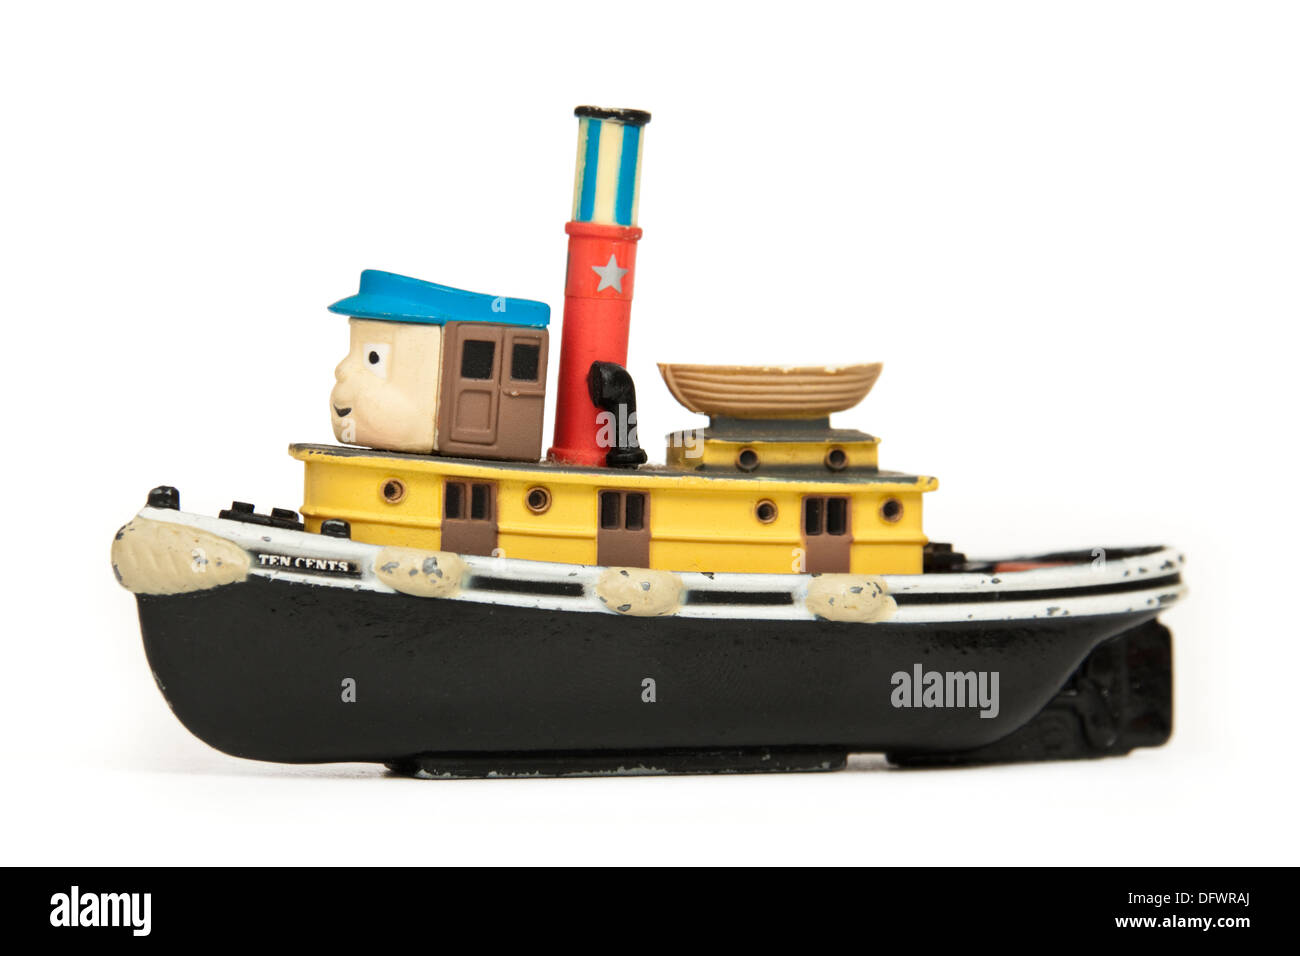 Ertl '10 Cents' diecast tug boat model from the 1988 British children's TV-series 'TUGS' - Stock Image